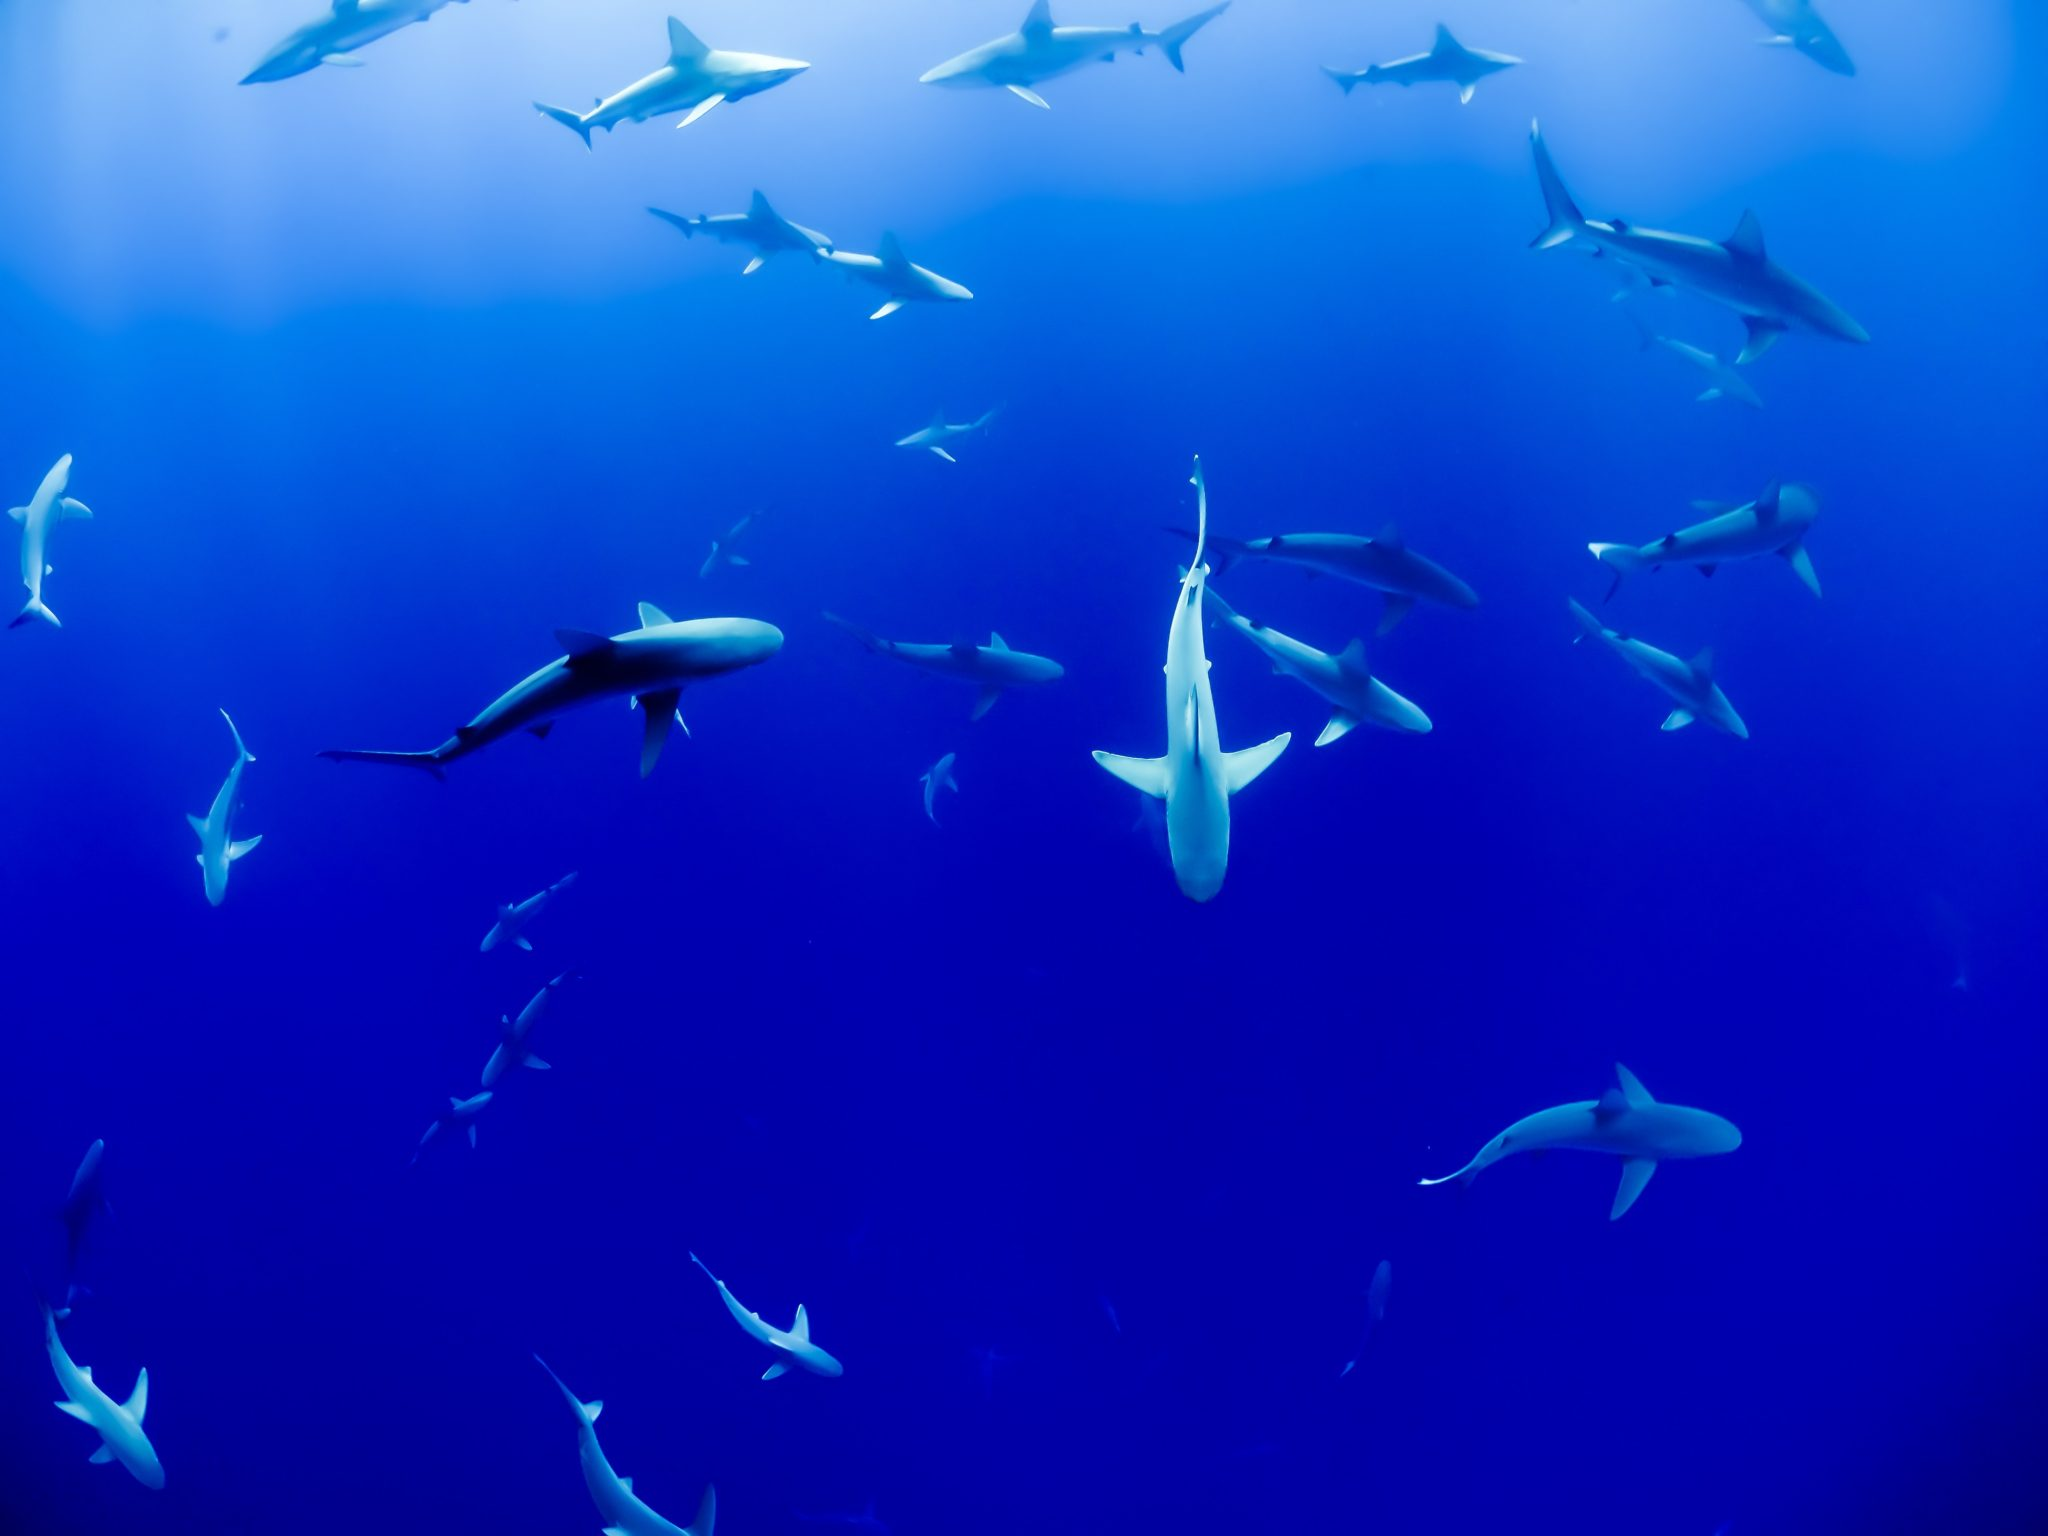 Shark Tourism: Is It Possible To Have An Ethical Shark Dive?